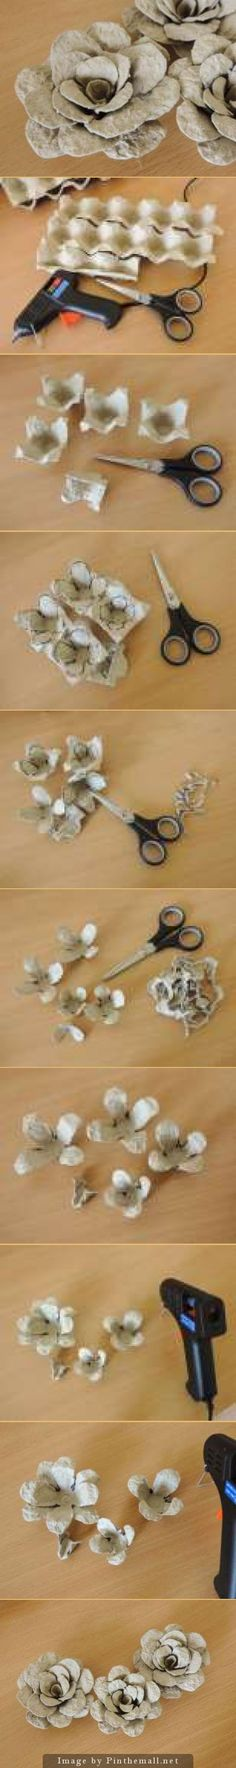 The whole detailed photo tutorial on how to make these egg carton flowers - Tutorial foto: trandafiri din cofraje de ou | Atelierul Grdina cu fluturi